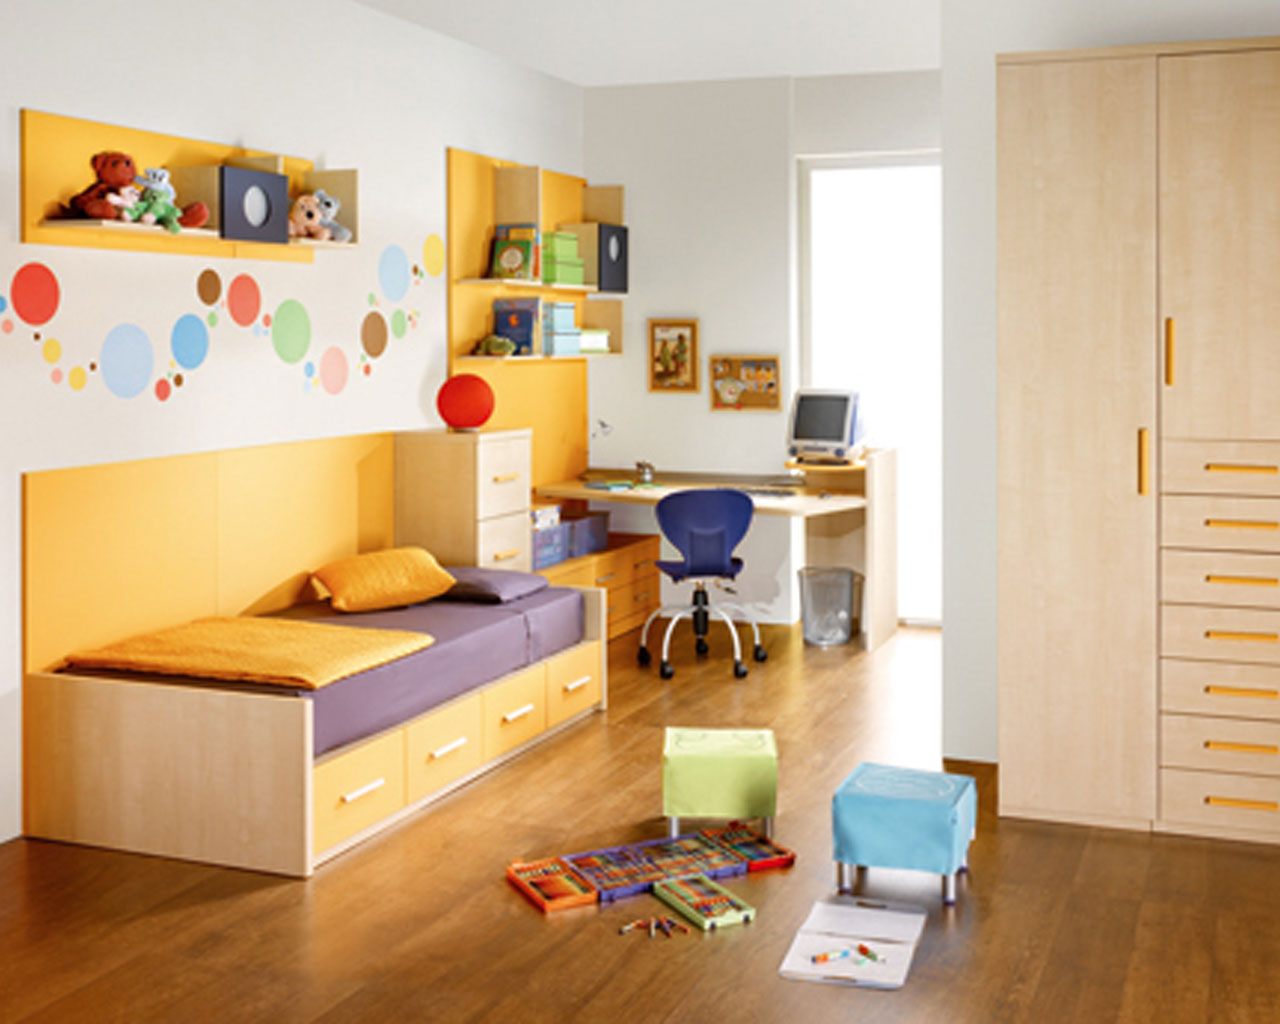 Kids room decor and design ideas as the easy yet effective for Decorating ideas for computer room